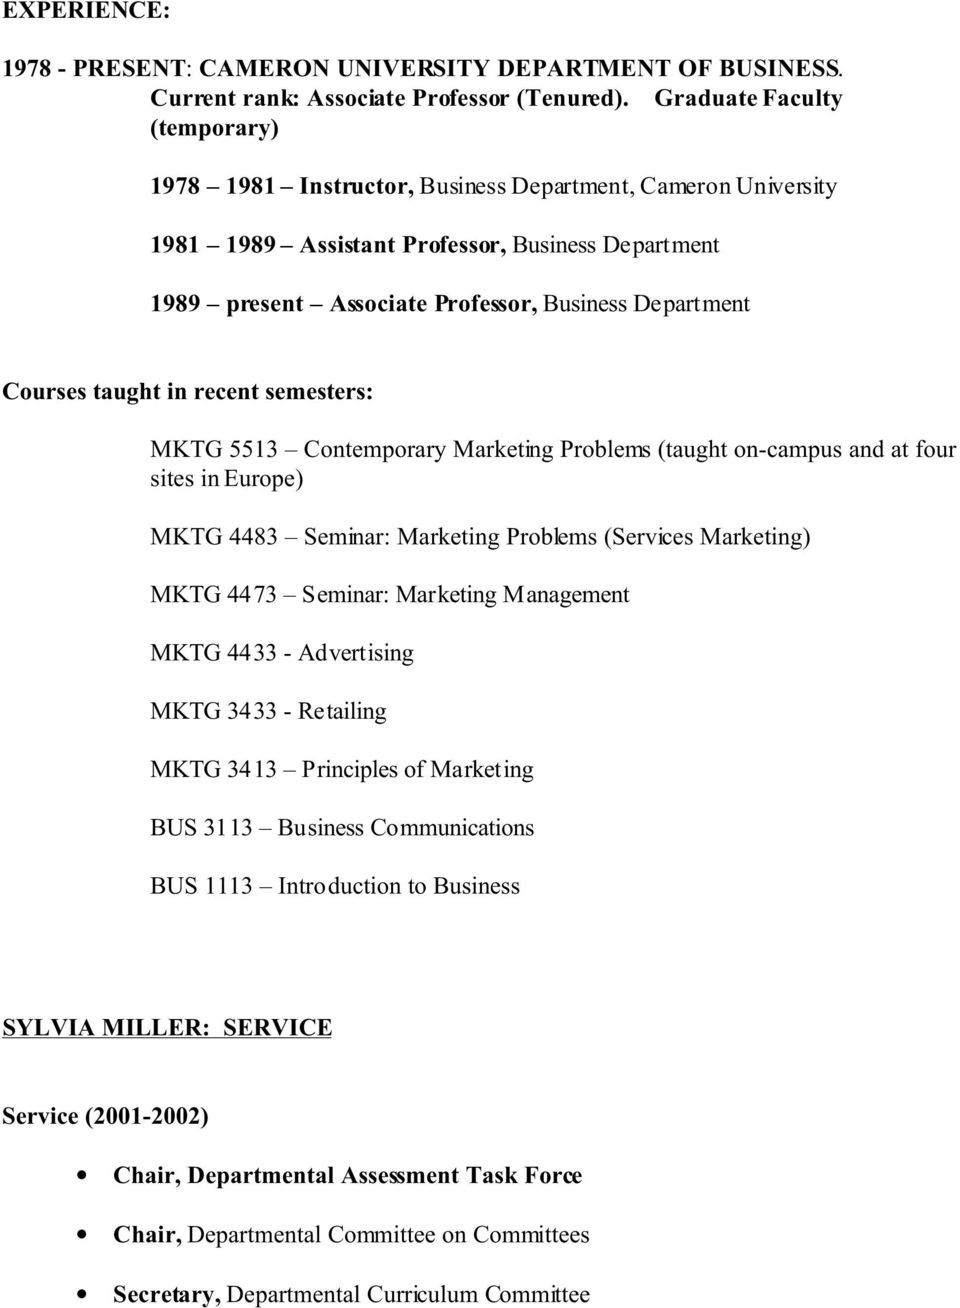 Courses taught in recent semesters: MKTG 5513 Contemporary Marketing Problems (taught on-campus and at four sites in Europe) MKTG 4483 Seminar: Marketing Problems (Services Marketing) MKTG 4473